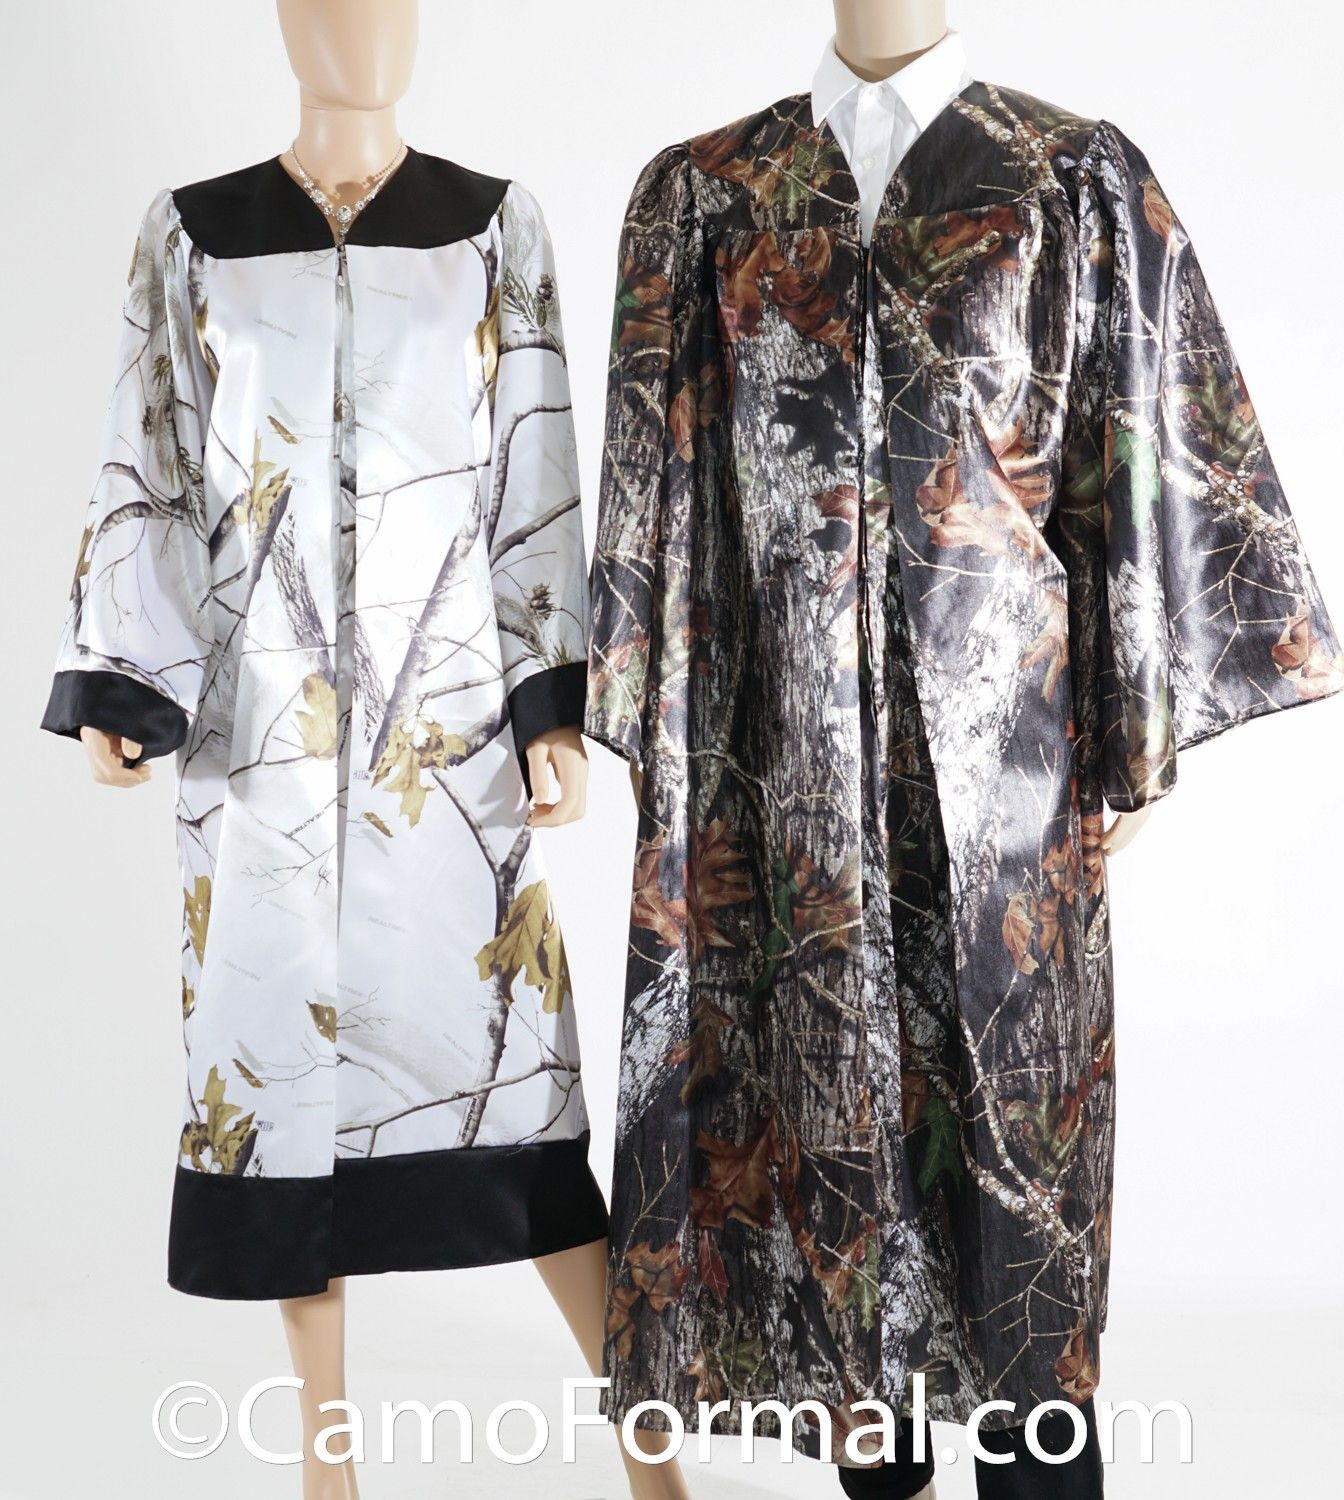 Camo graduation gown shown in the ap snow realtree with black trim or mossy oak new